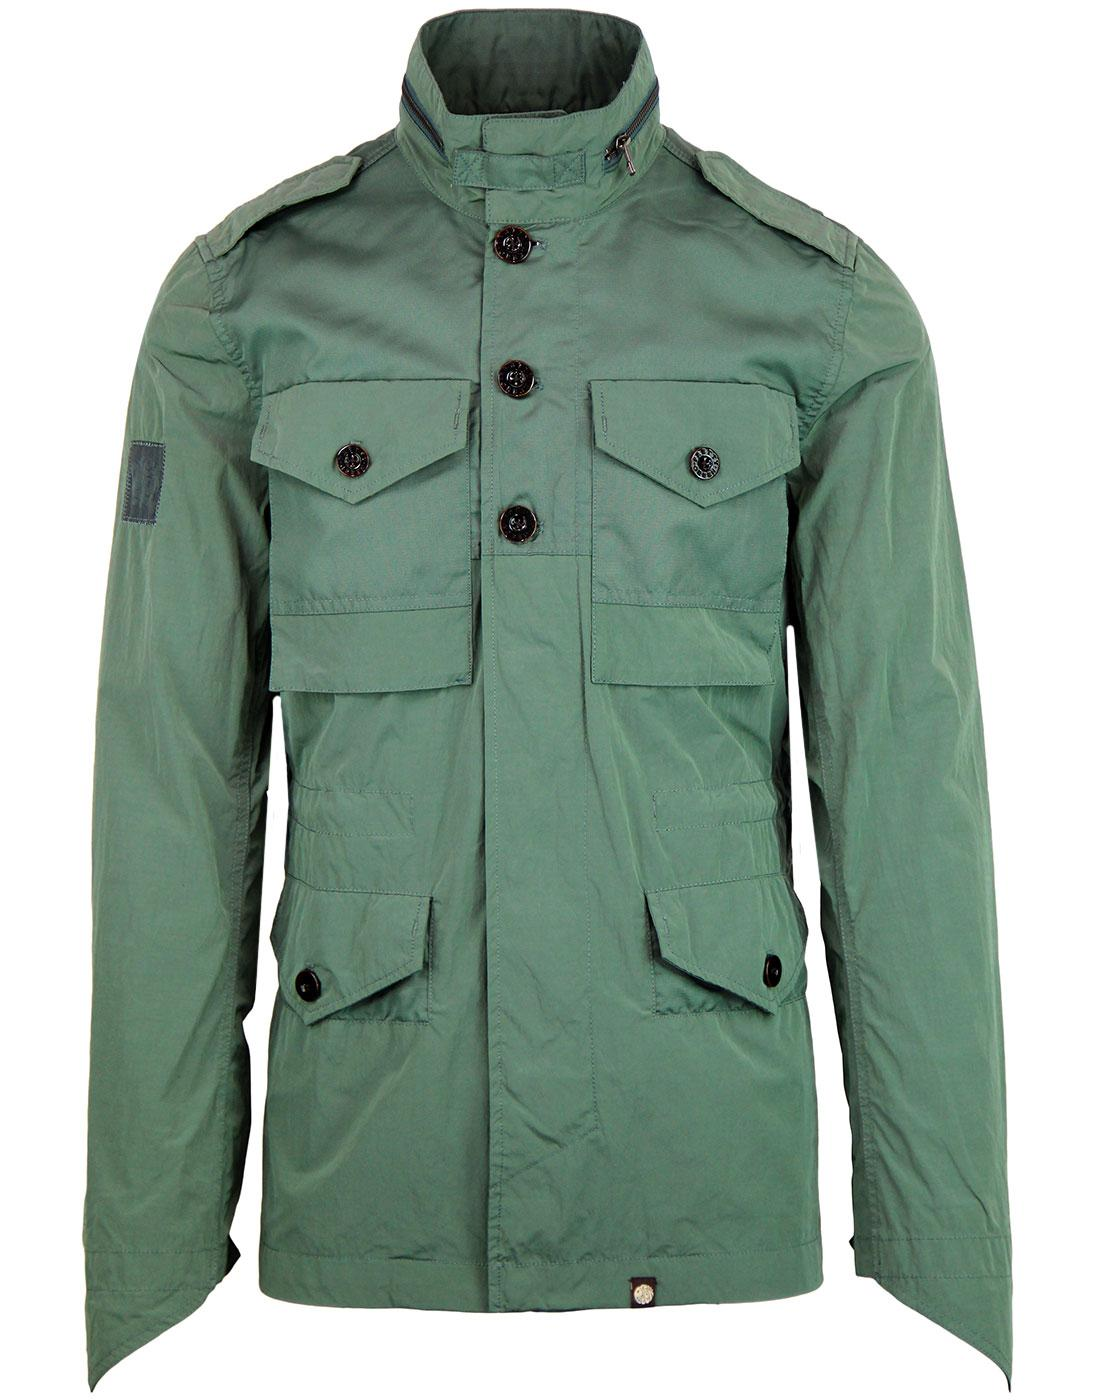 Meadowgate PRETTY GREEN Military M65 Field Jacket